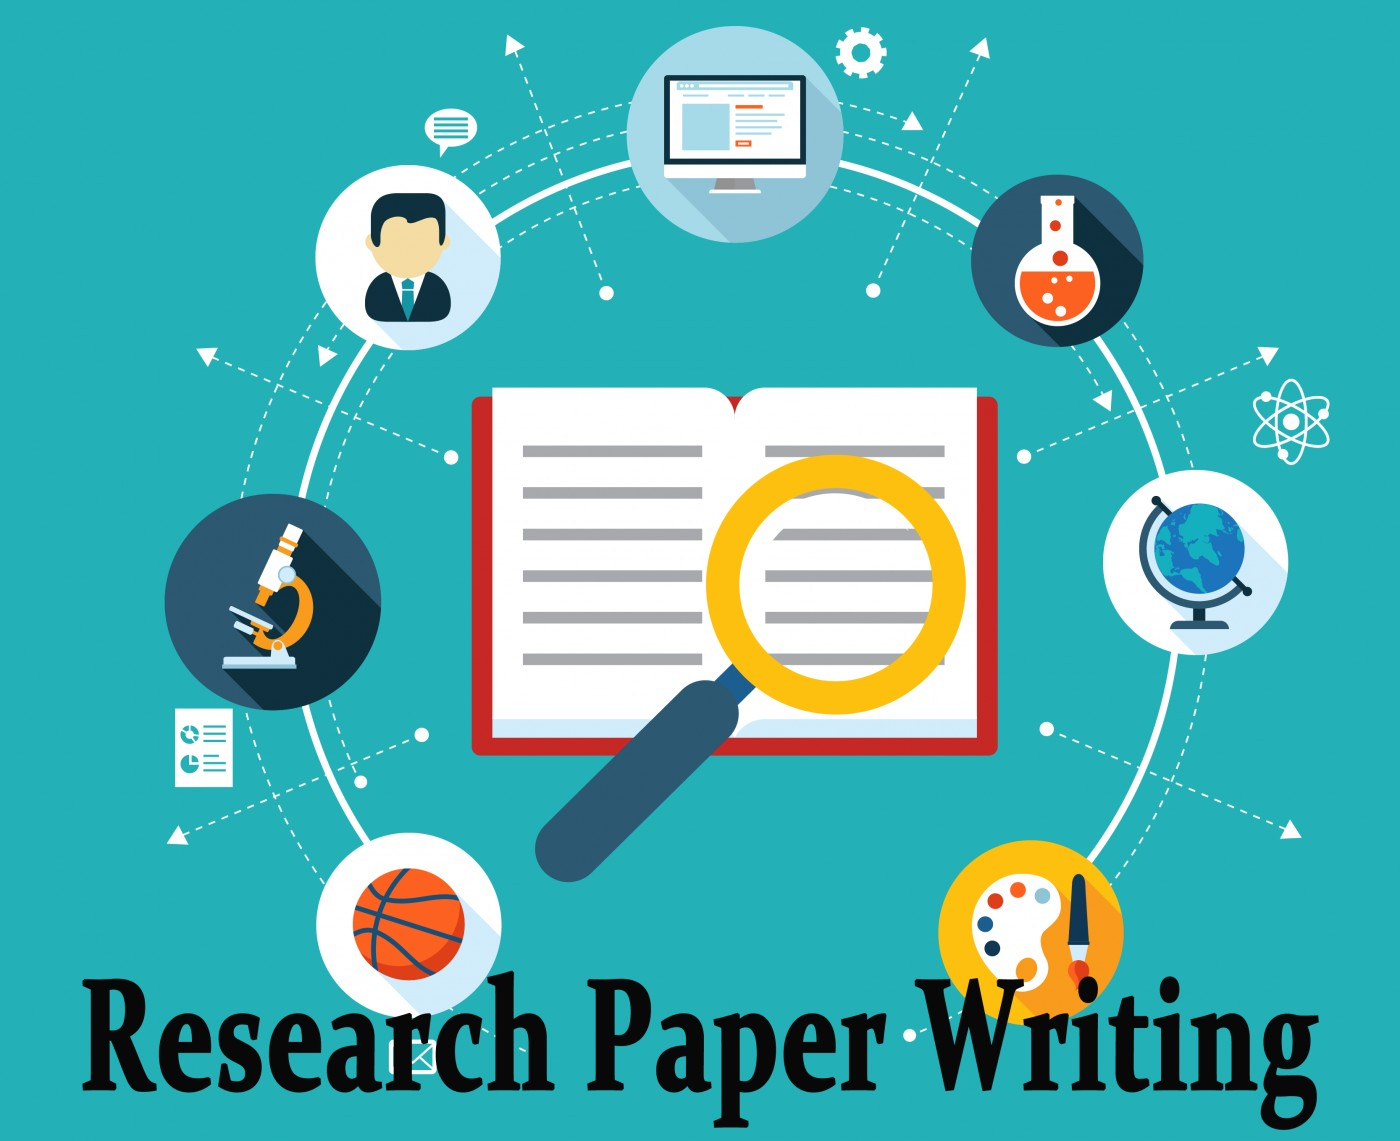 022 Writting Research Paper 503 Effective Writing Dreaded A Proposal In Day Steps To Introduction 1400